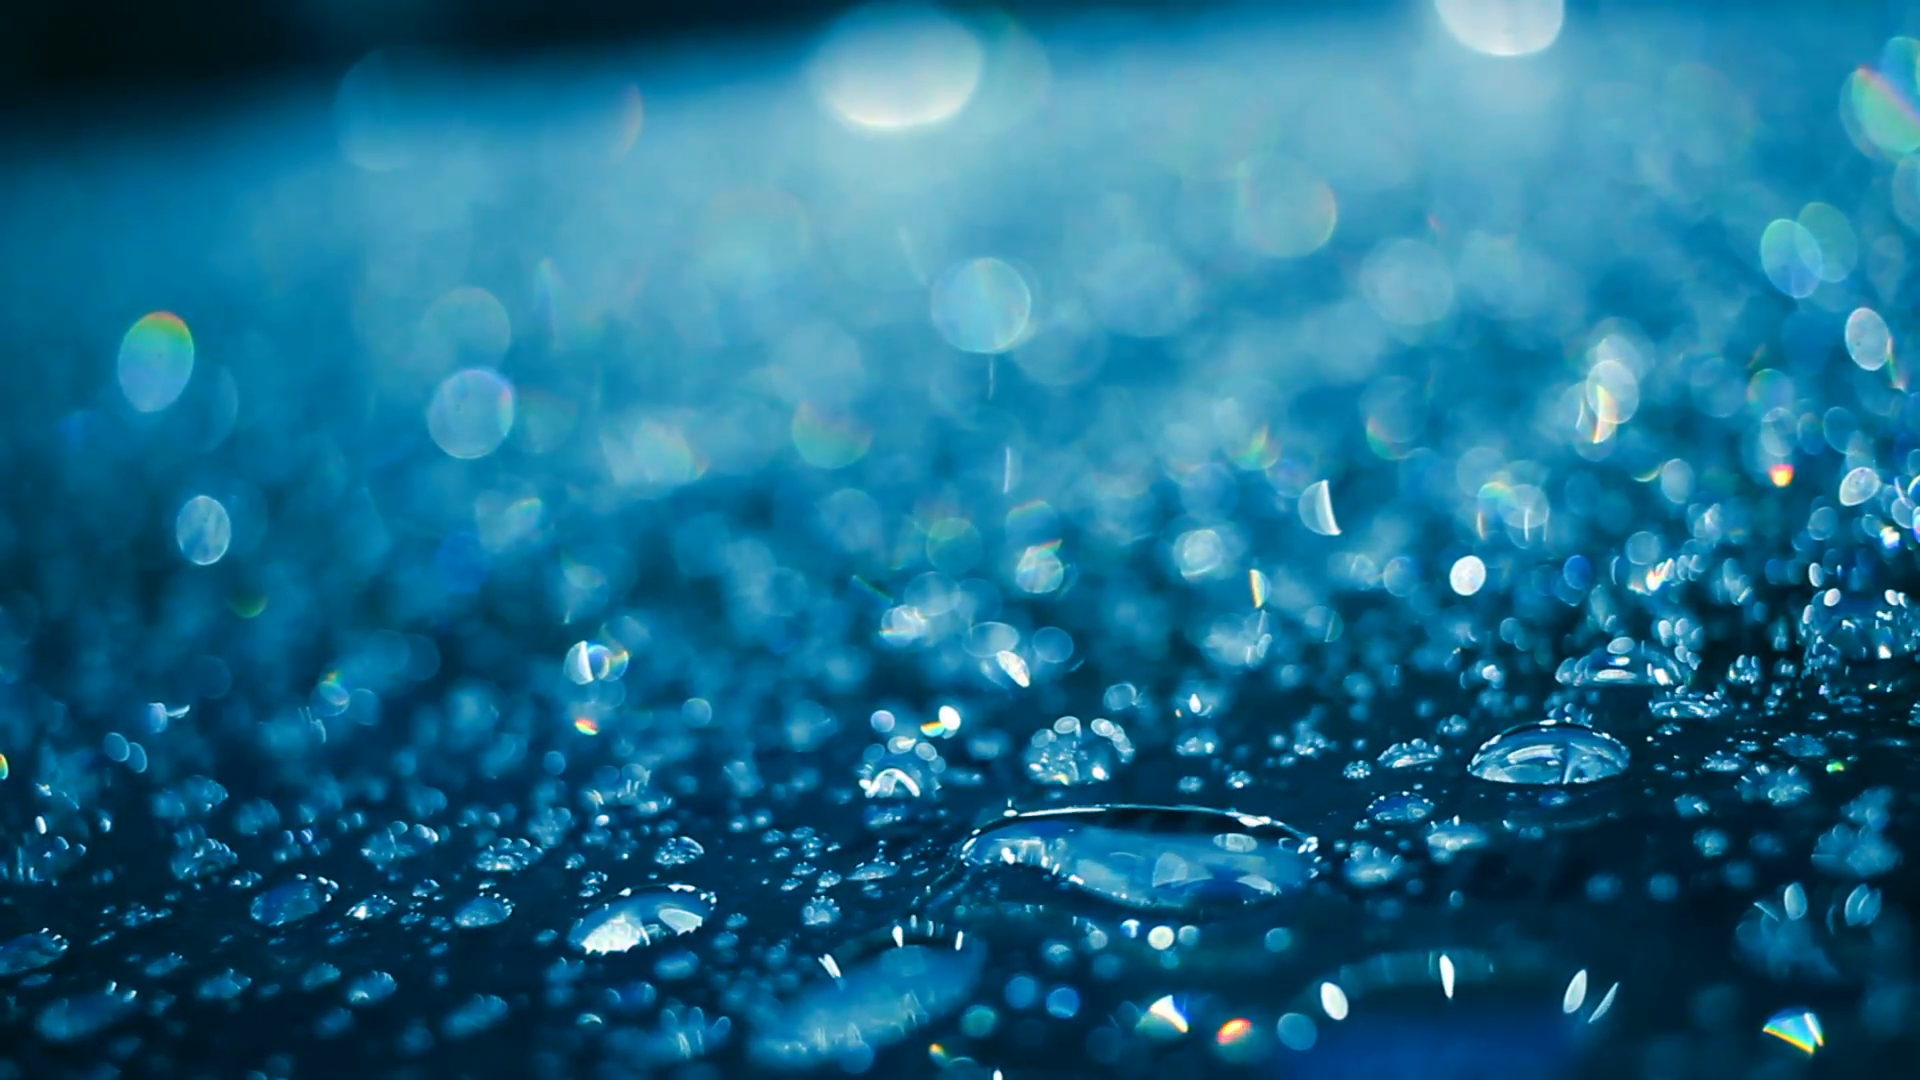 Water drops on glass after rain. Water droplets on glass in blue ...